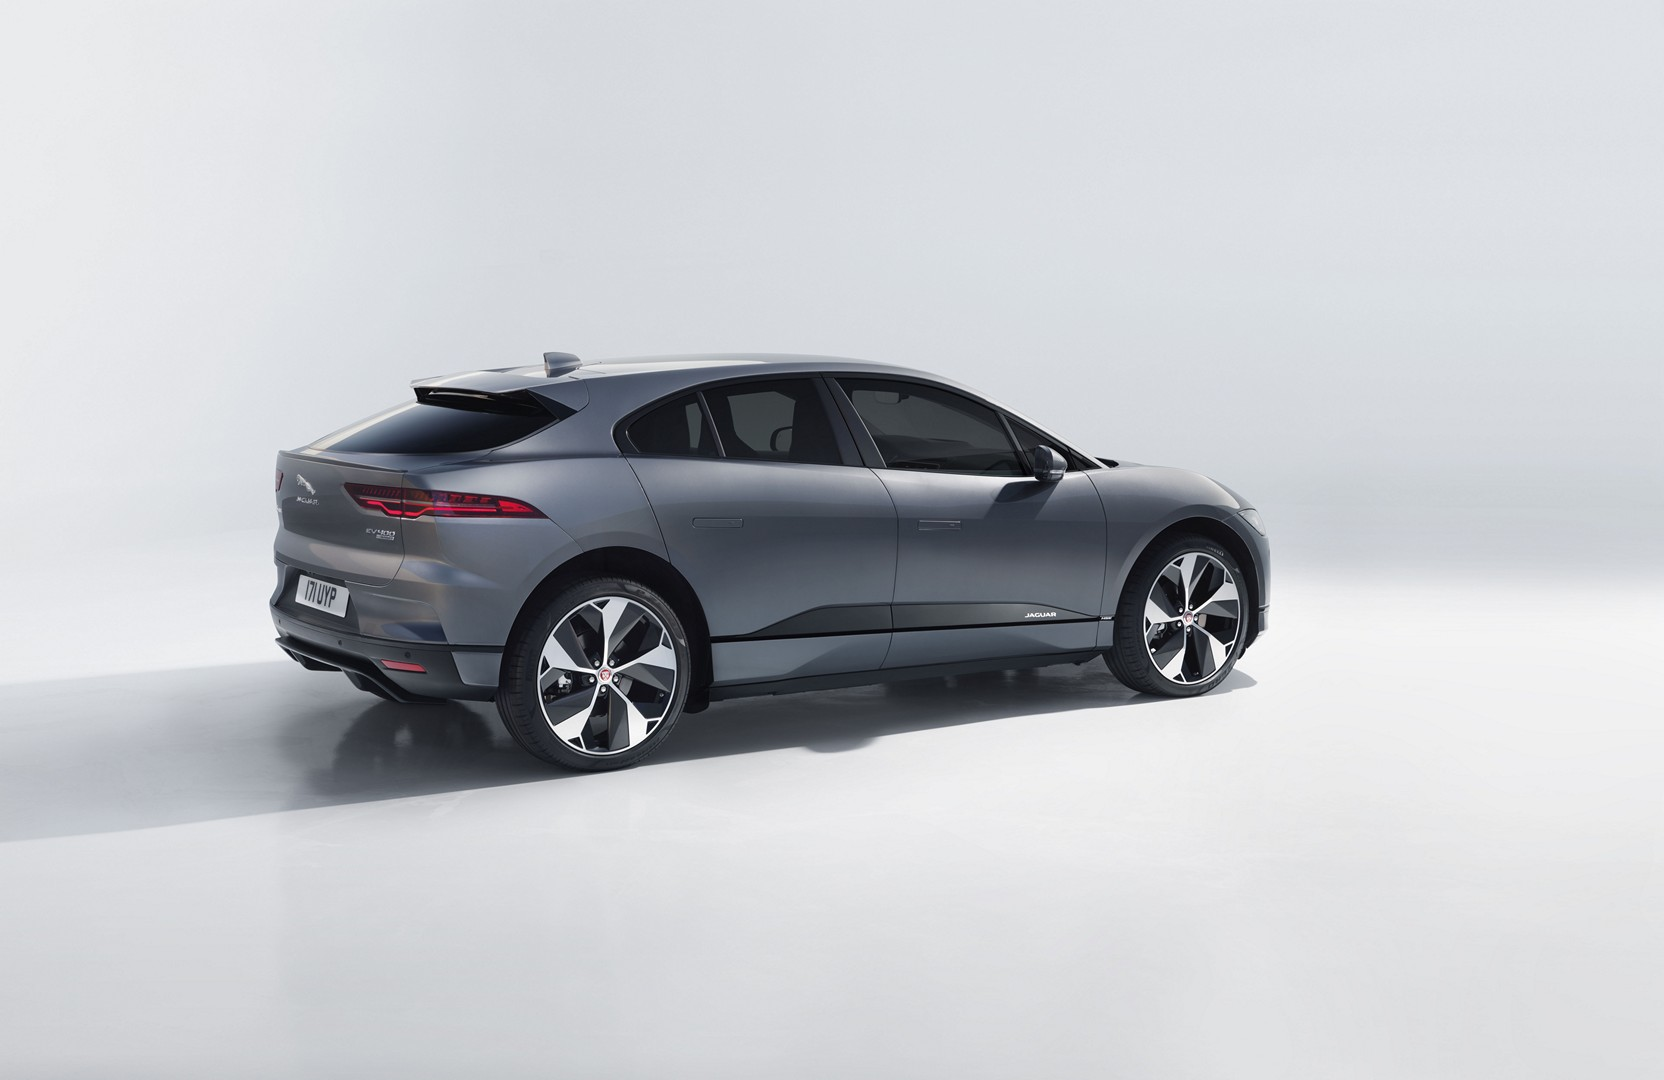 2019 Jaguar I Pace Goes Official With Stunning Looks and 400 HP